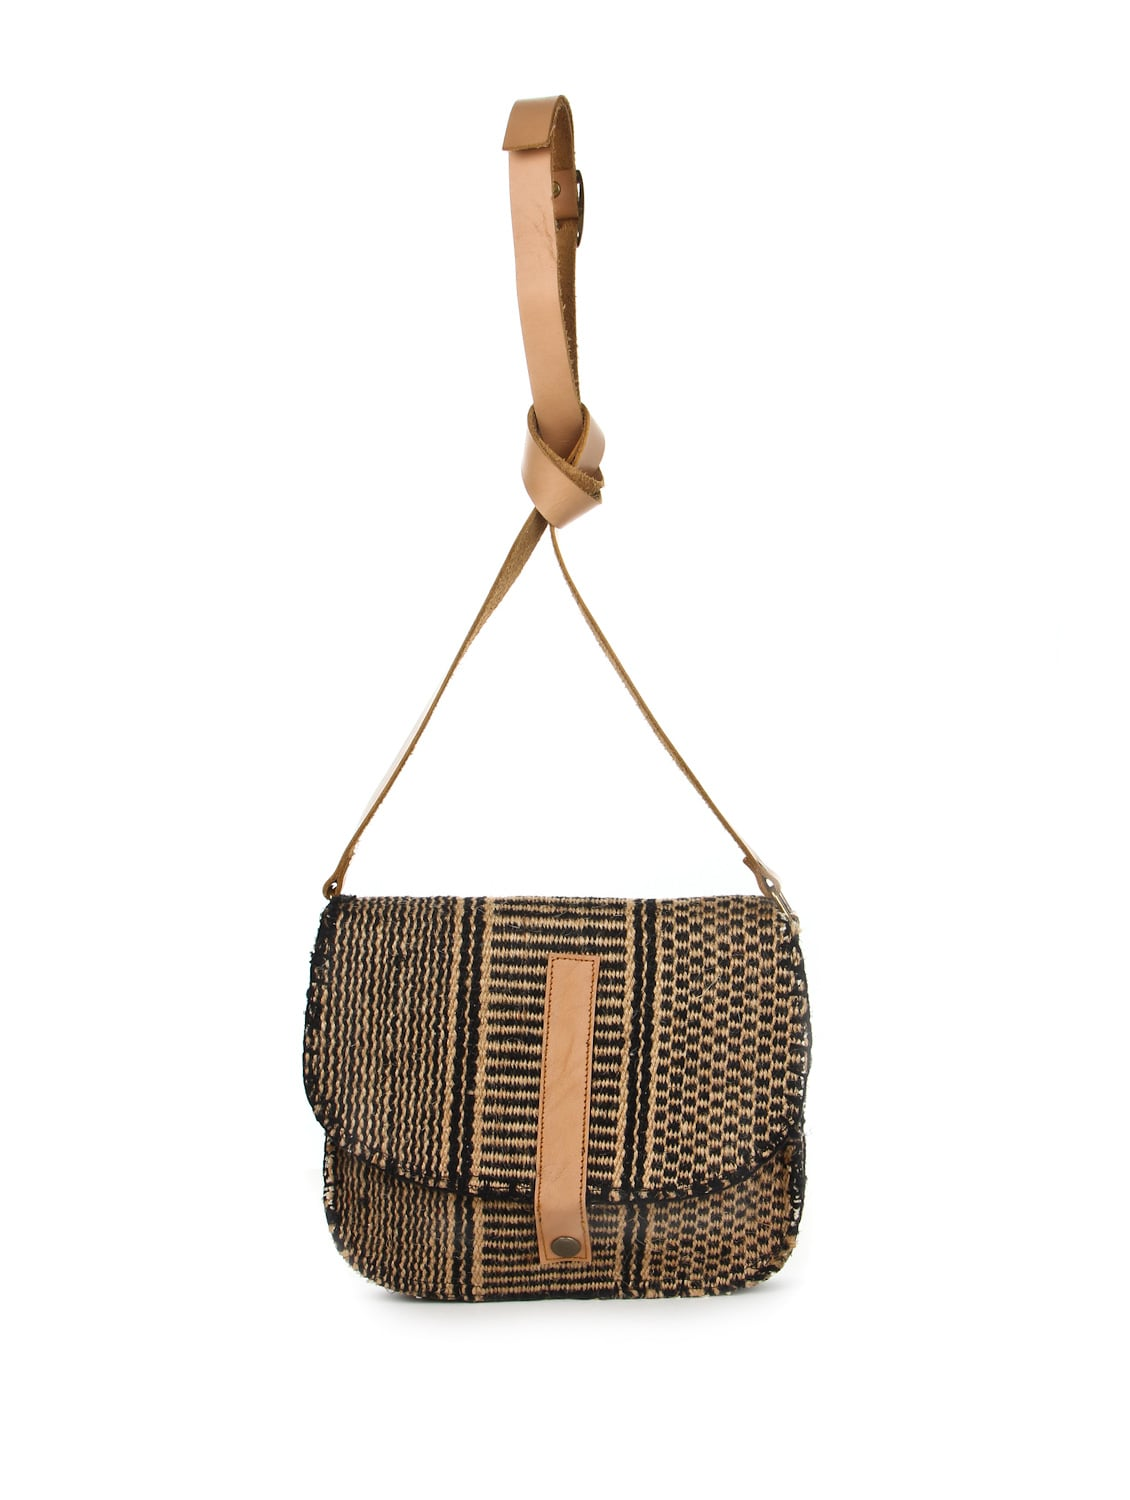 Brown And Black Jute Sling Bag - The House Of Tara